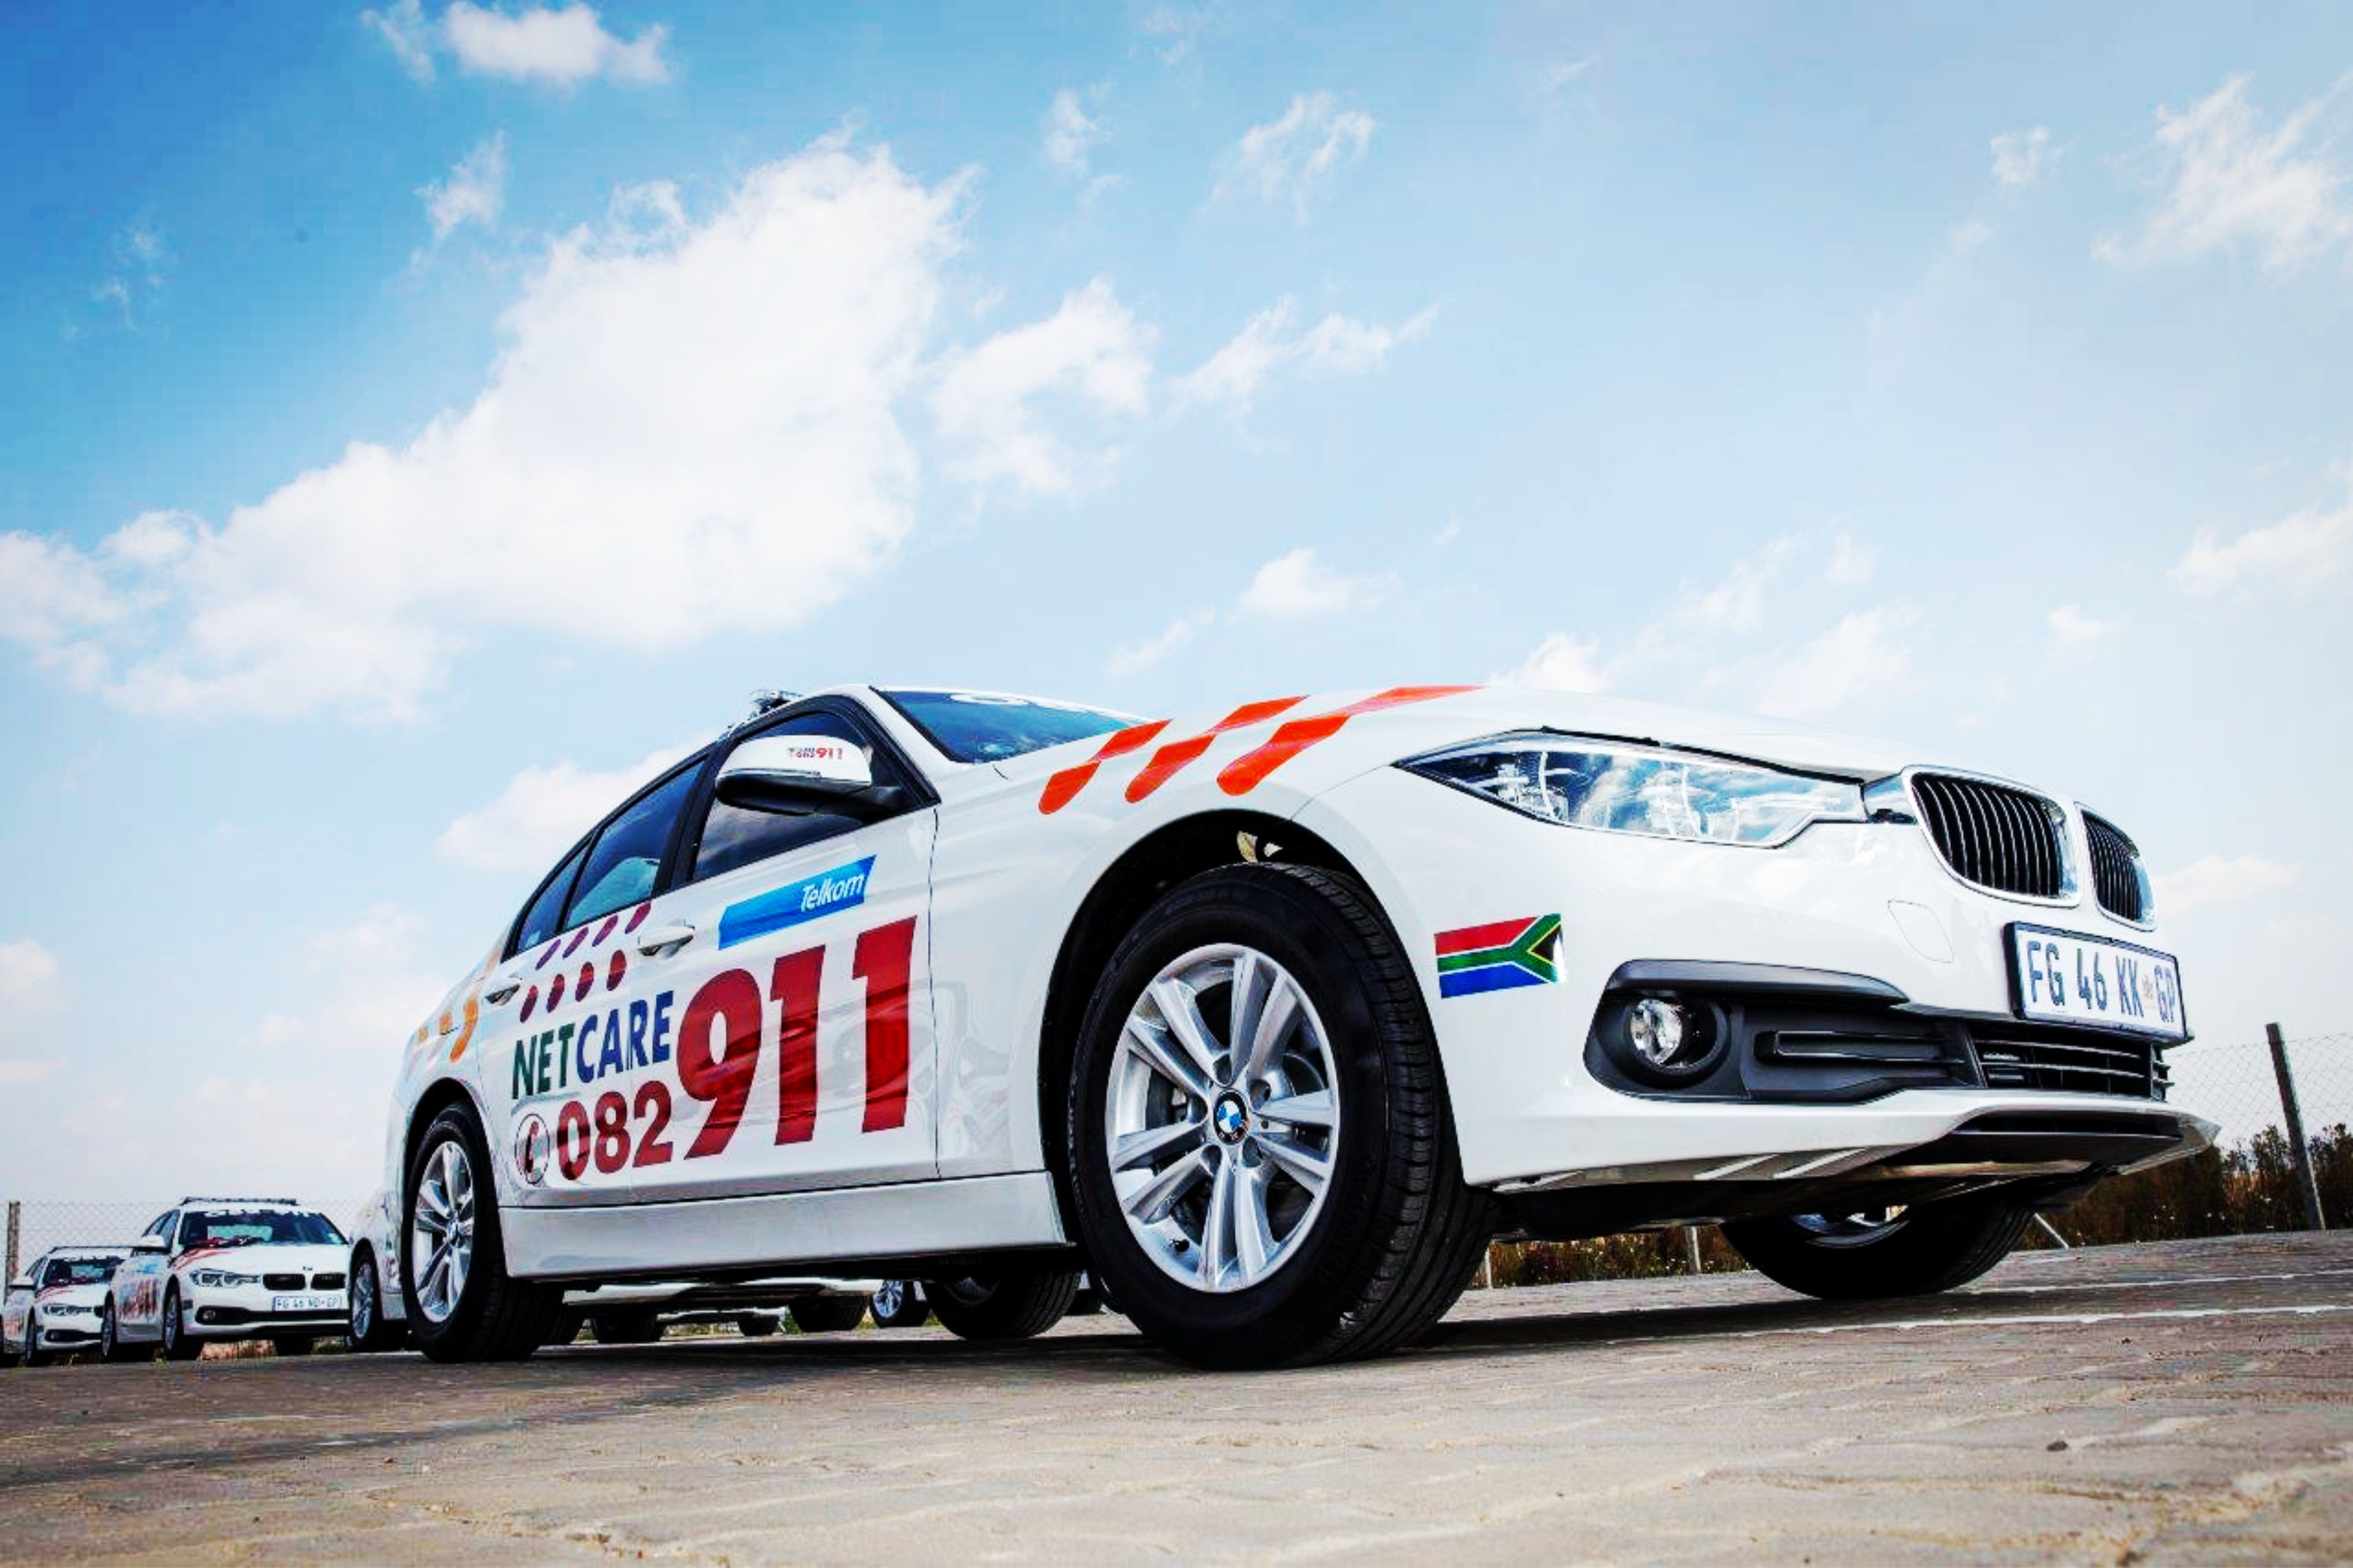 Netcare 911 BMW 3 Series